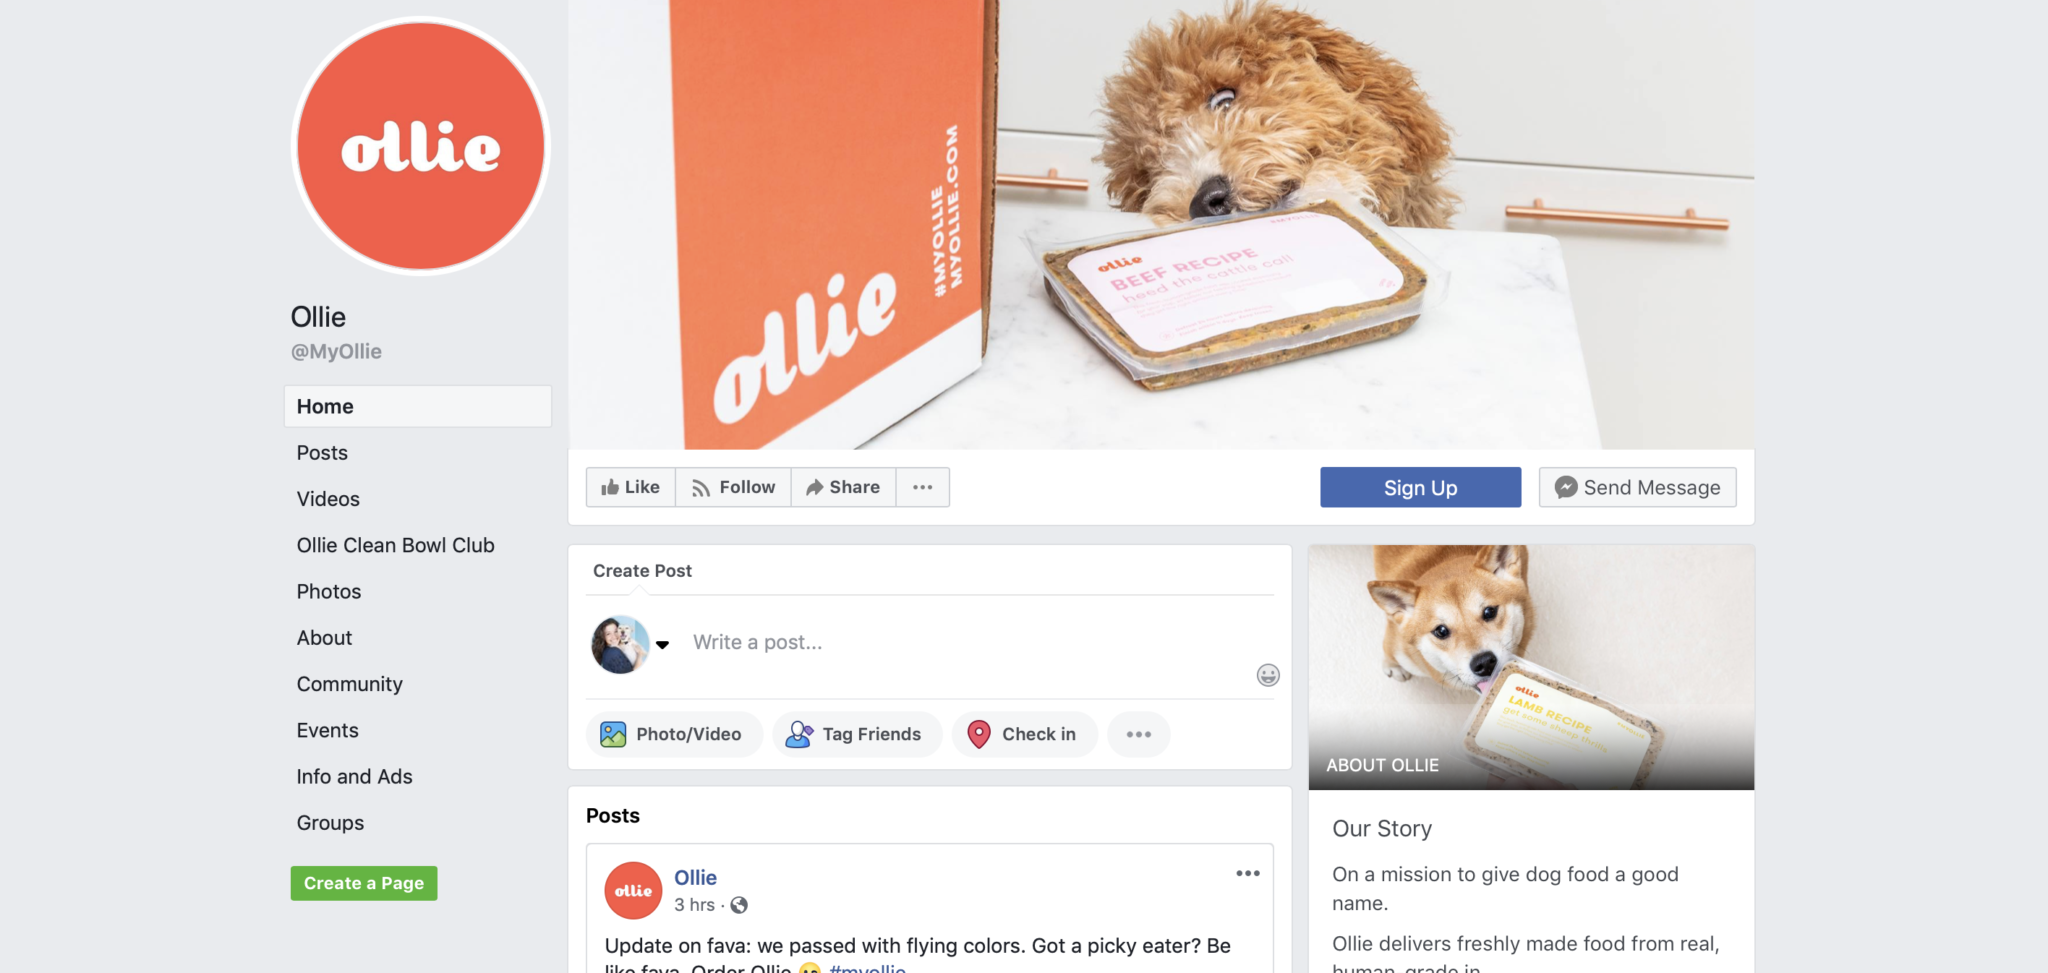 Ollie's facebook page